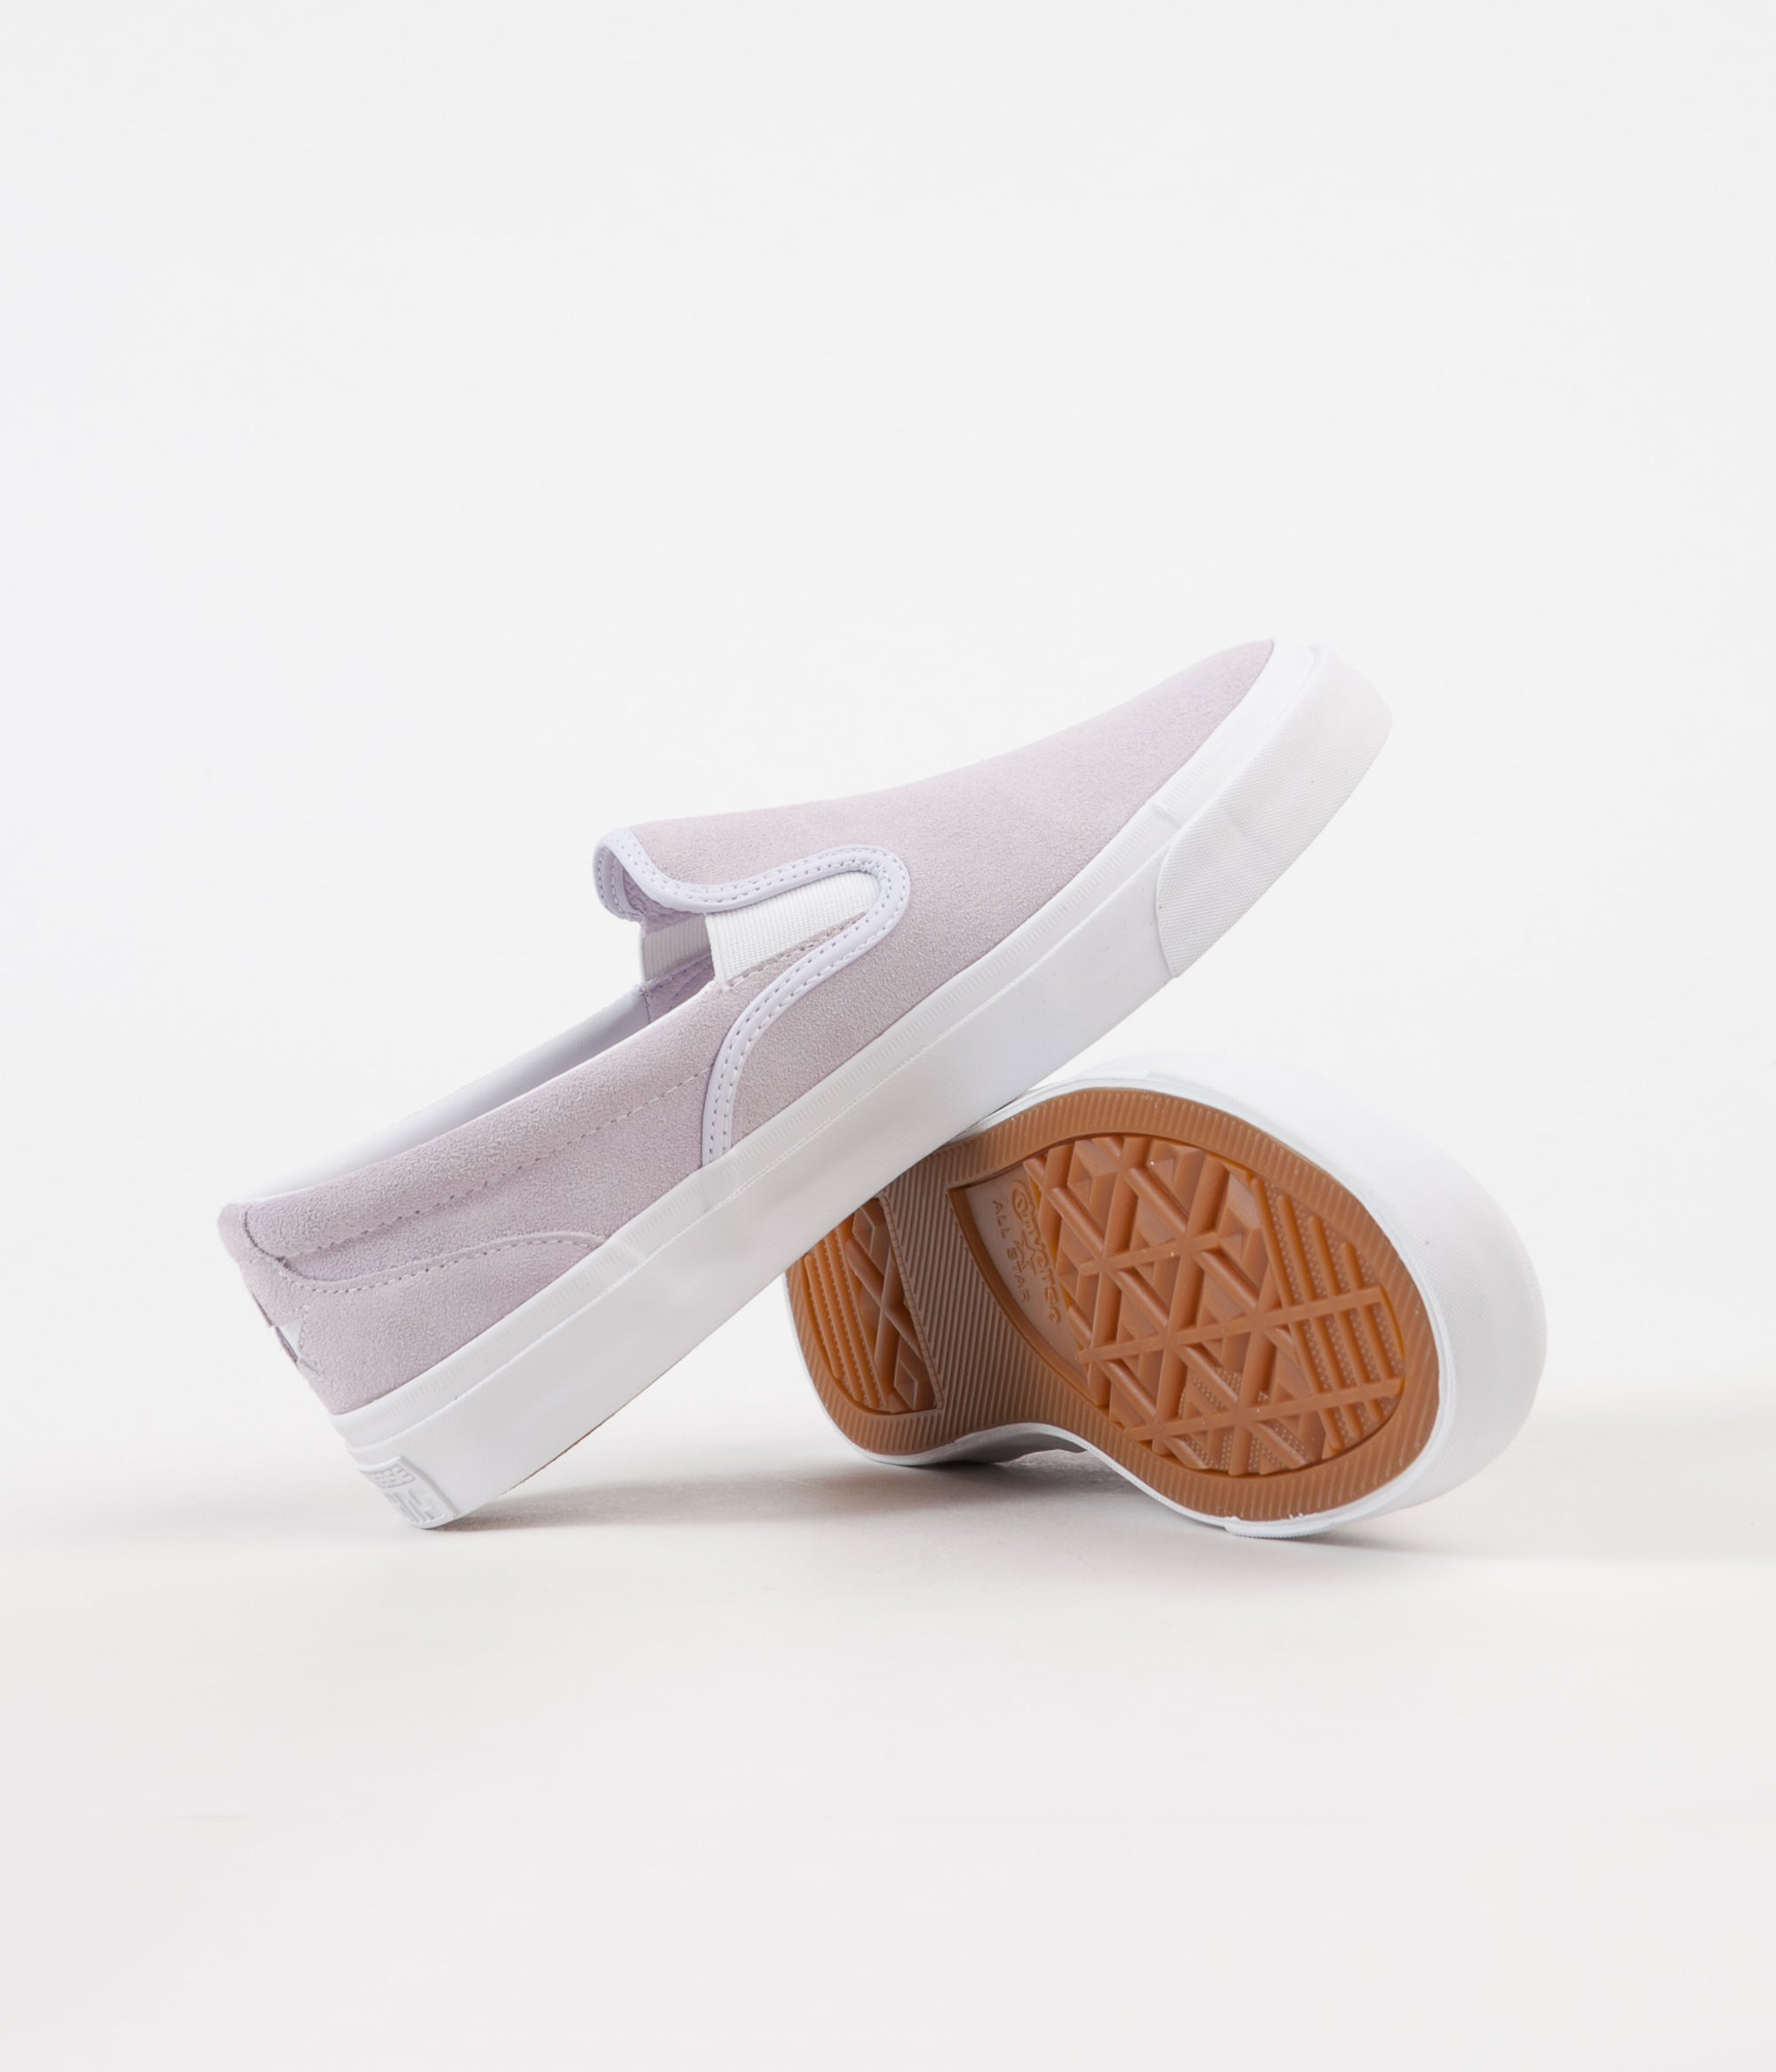 430bc937eb8b ... Converse One Star CC Slip On Shoes - Barely Grape   White   White ...